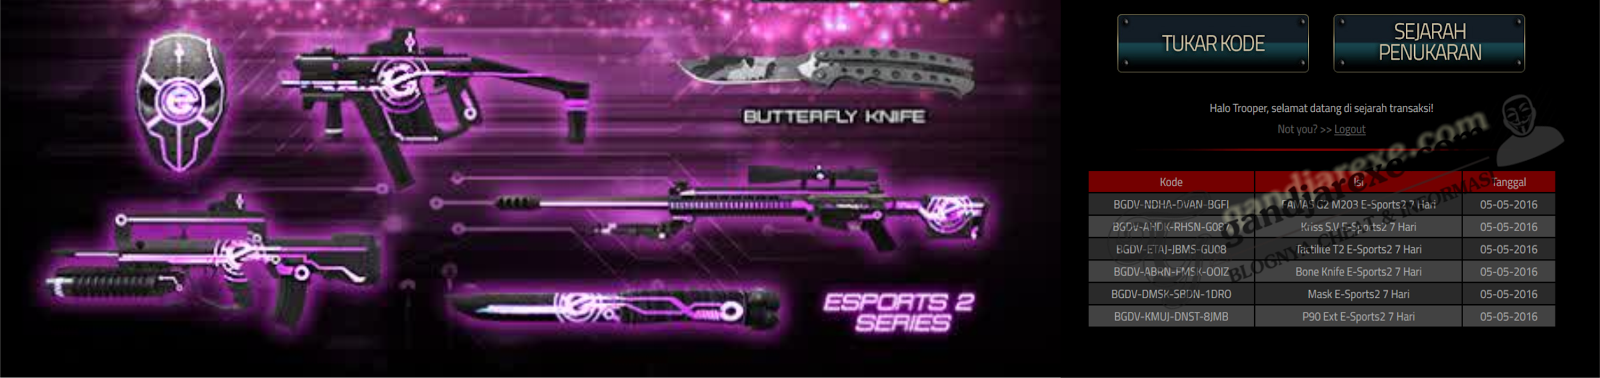 Redeem Code Weapon PB E-Sports 2 Series NEW !!!!